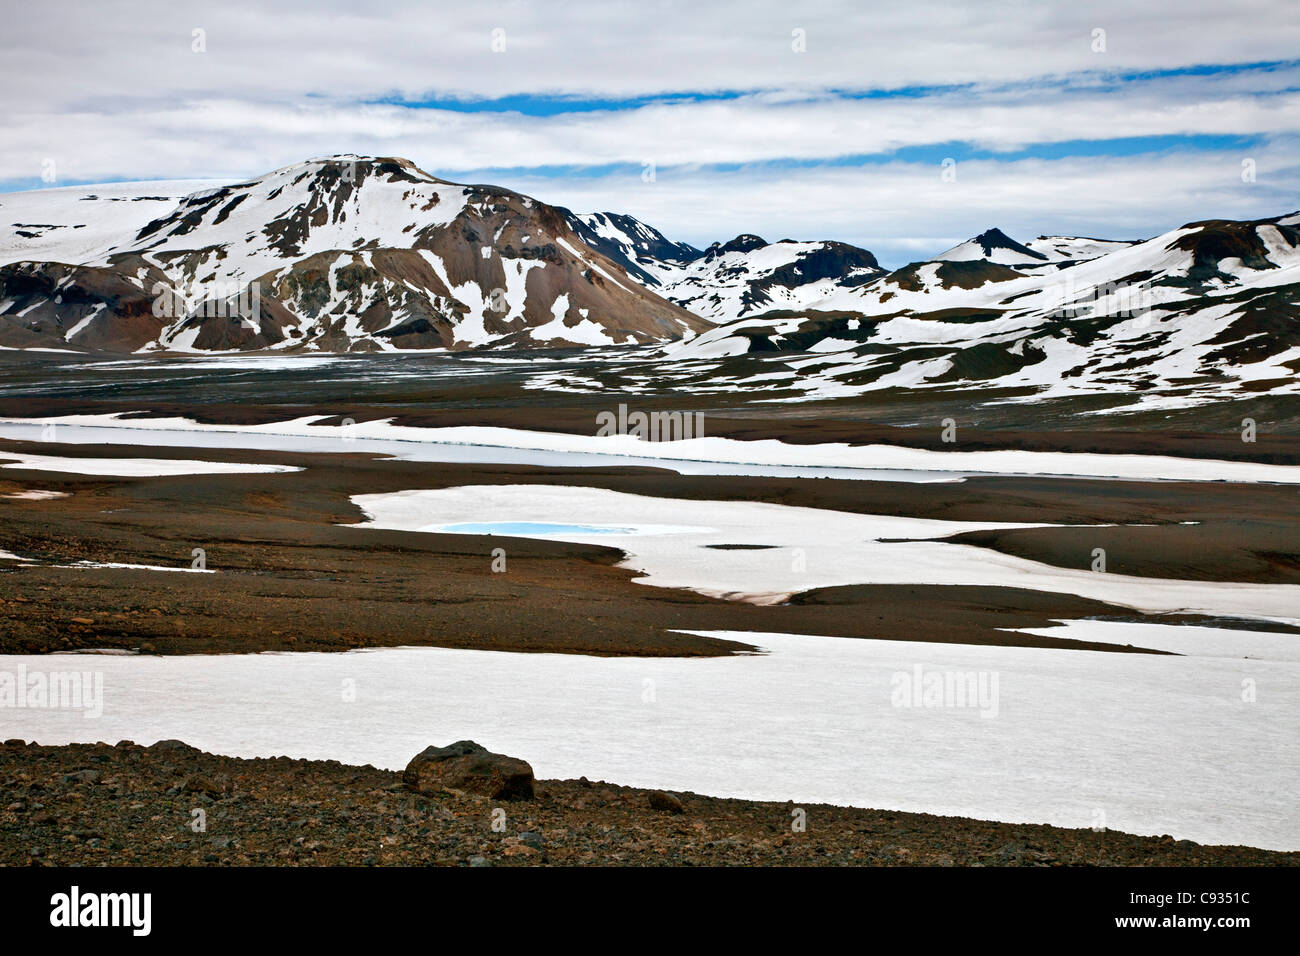 The small glacier and volcano of Porisjokull in Pingvellir National Park in early summer. - Stock Image